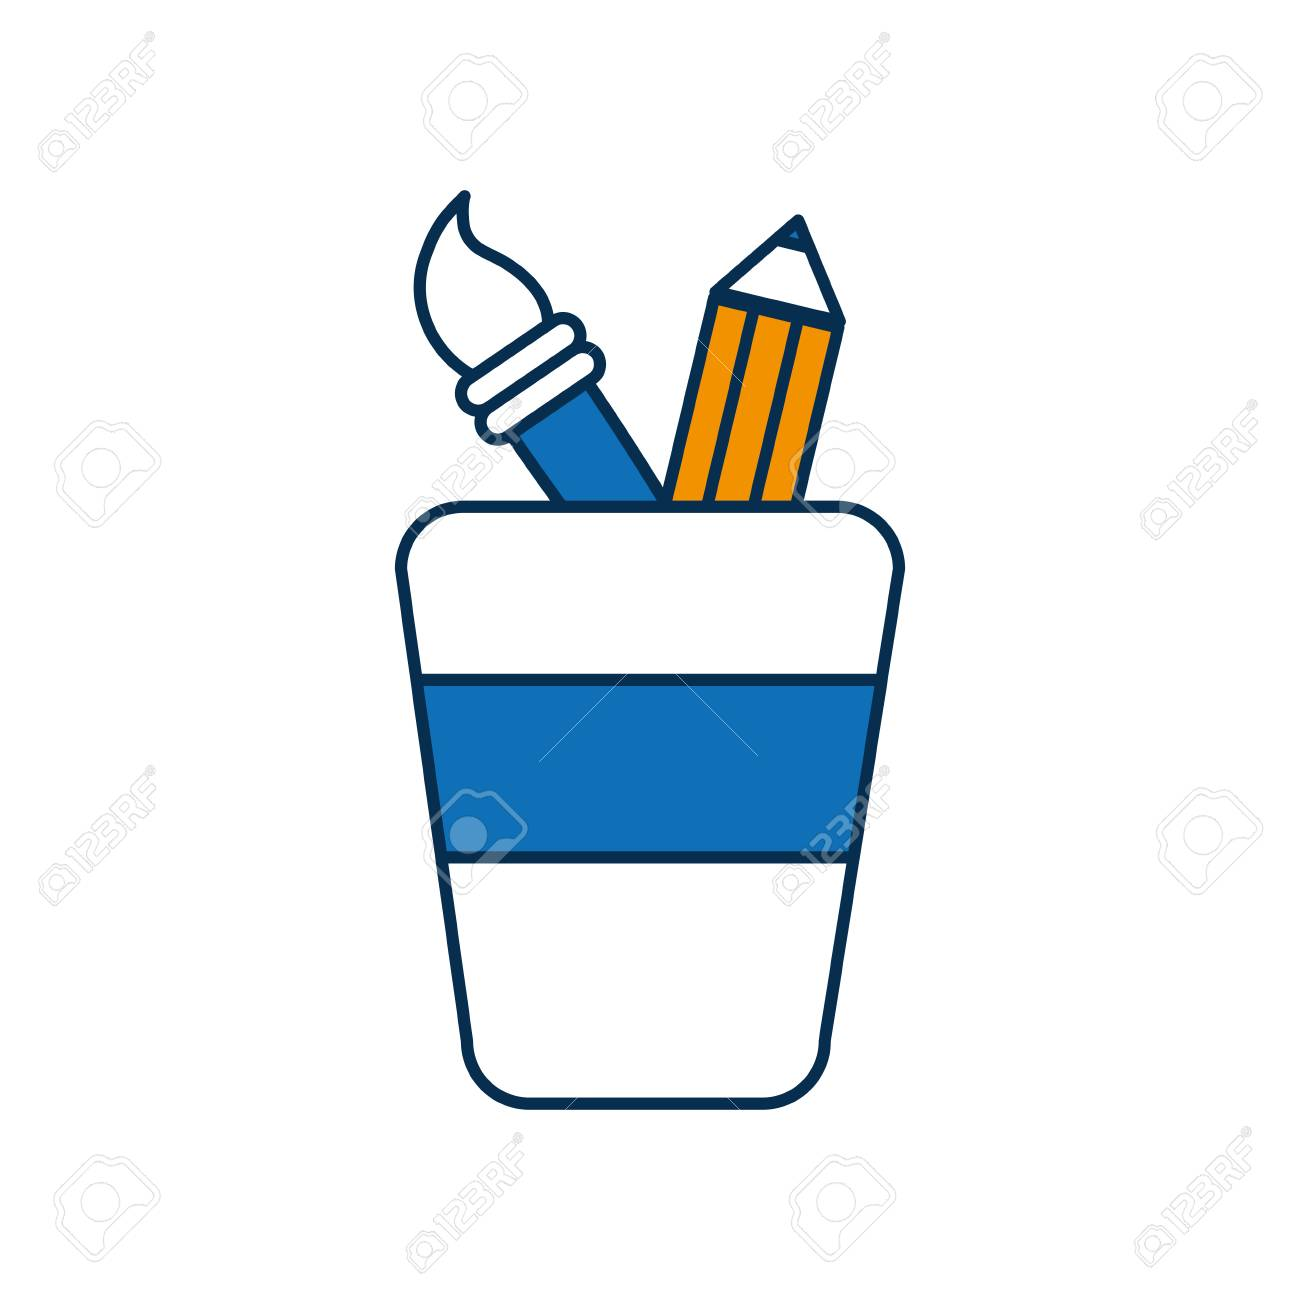 cup with drawing utensils icon over white background vector